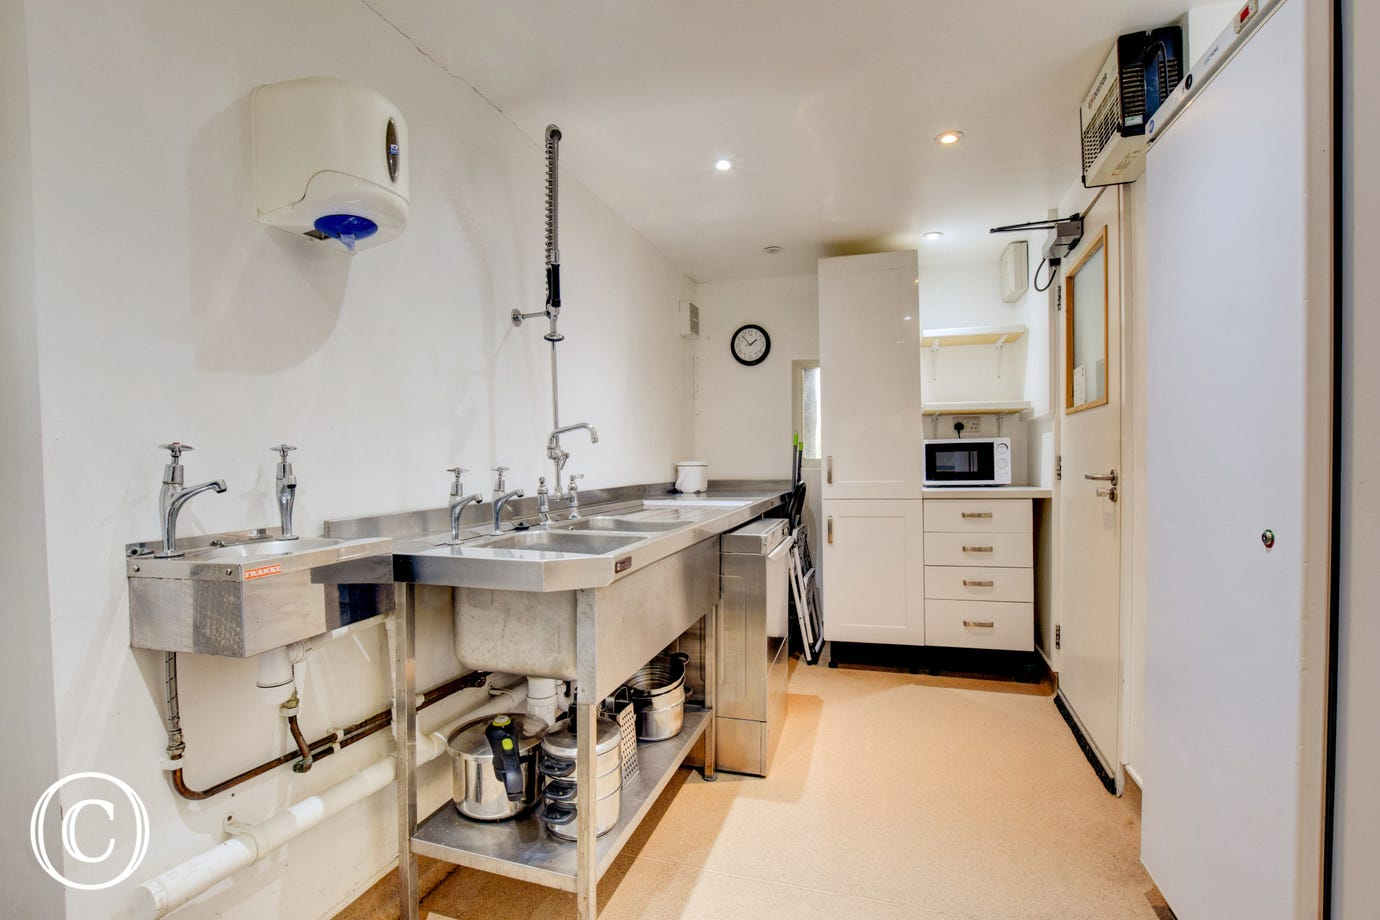 Fully fitted kitchen  - Galley style